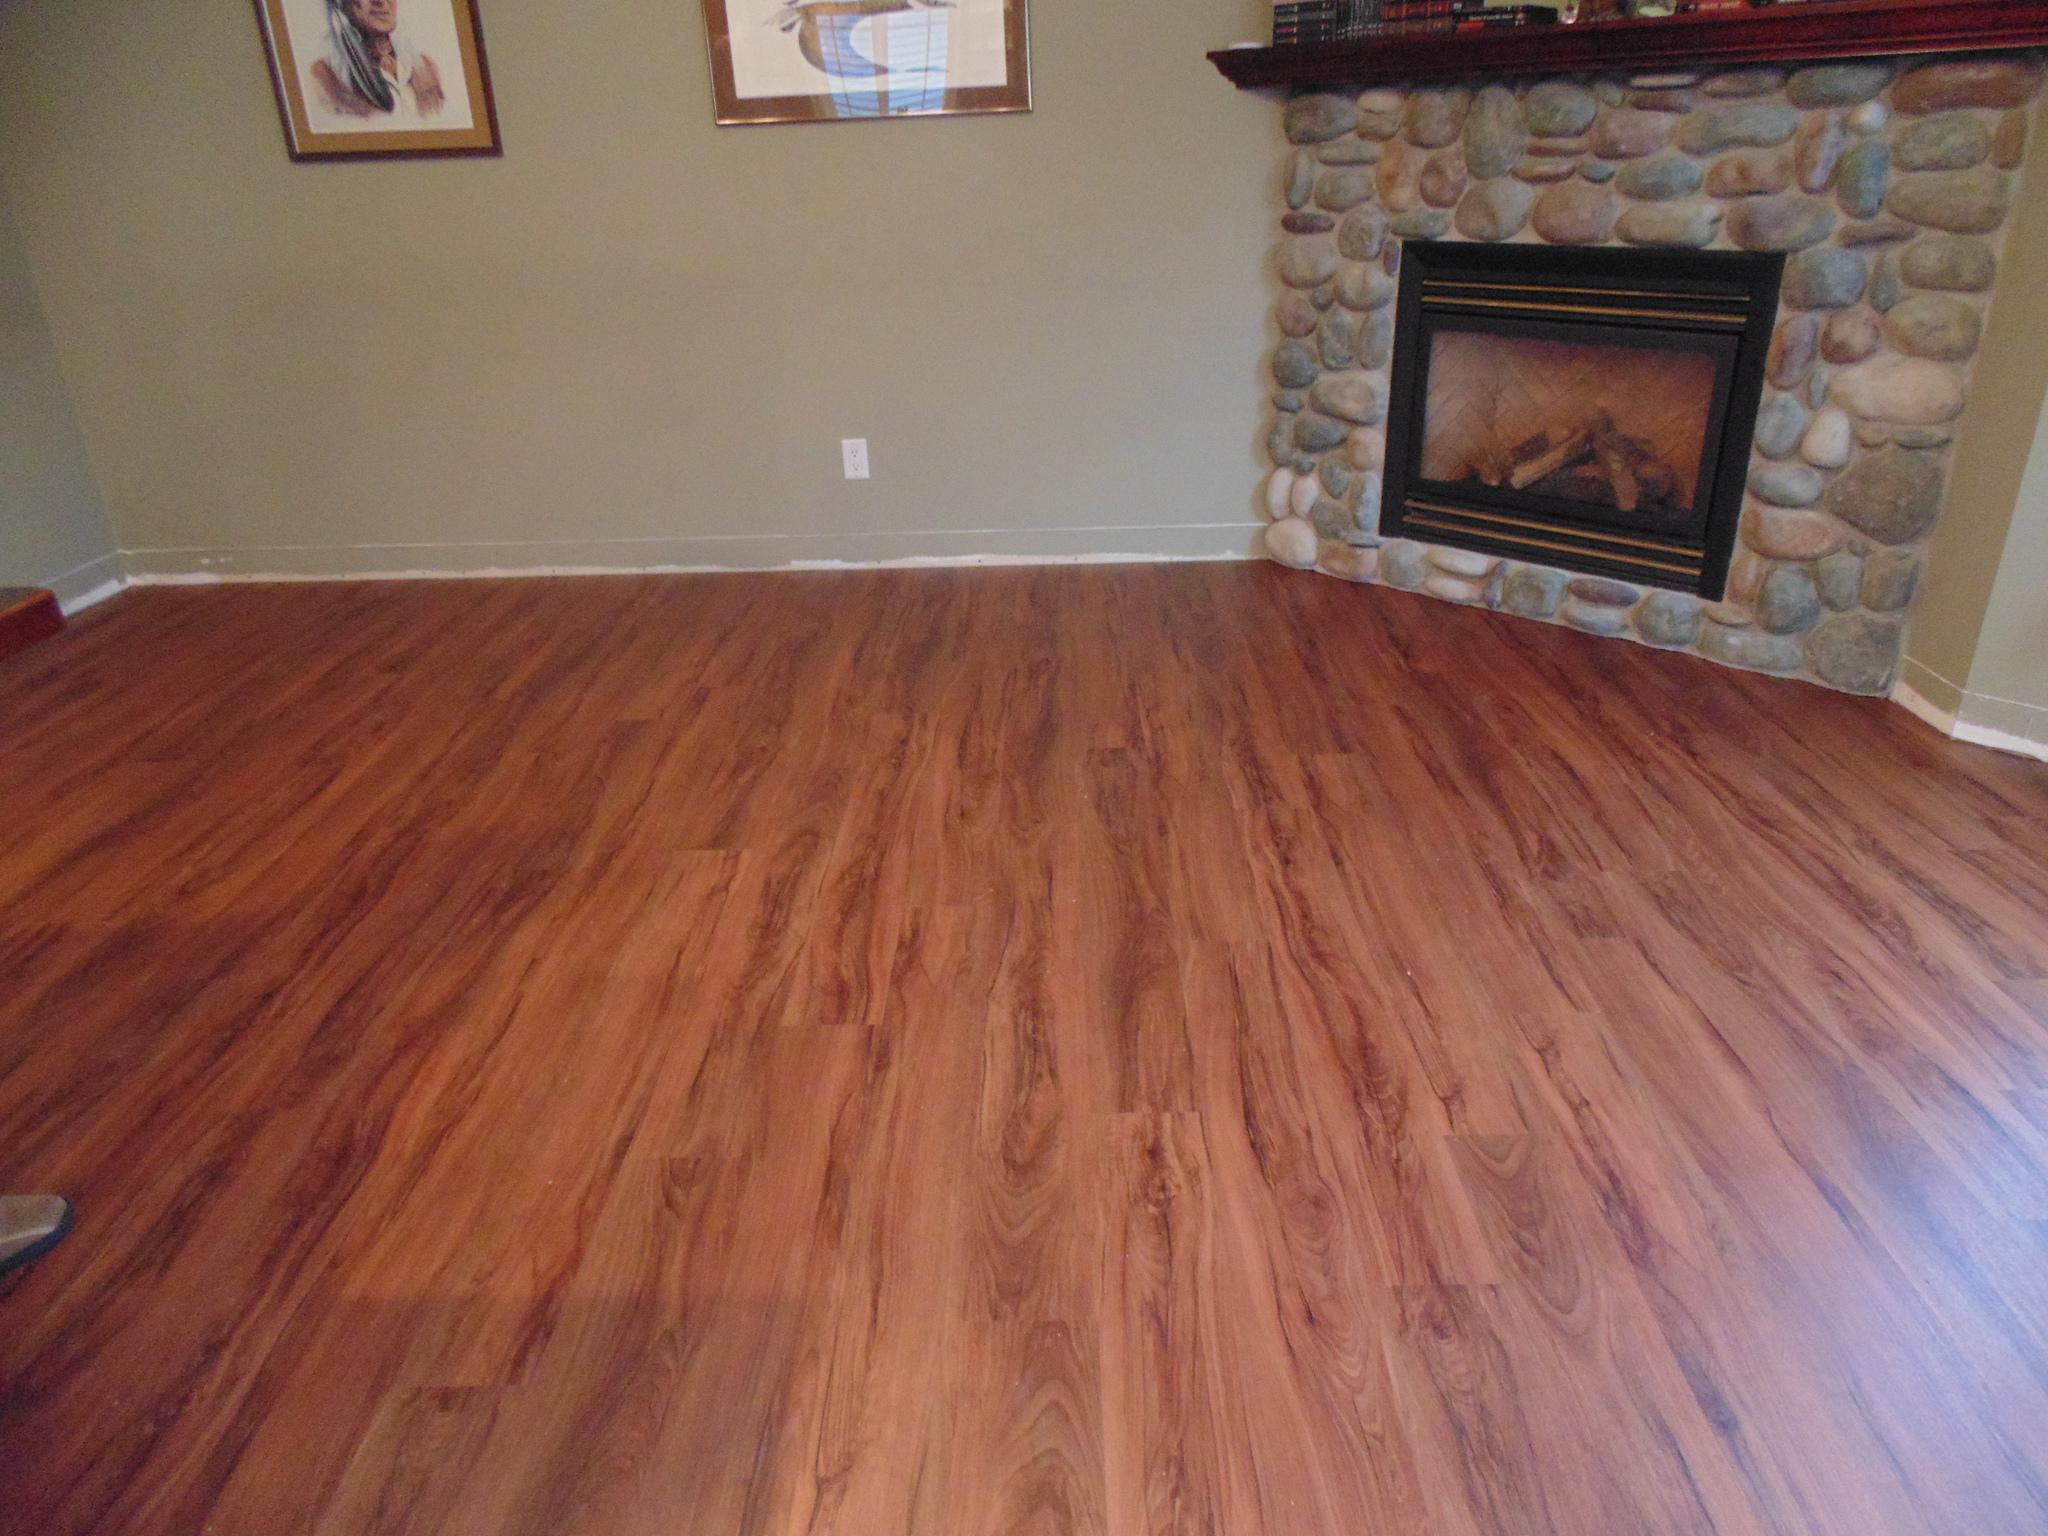 DIY Sheet or Tile Vinyl Flooring Installation